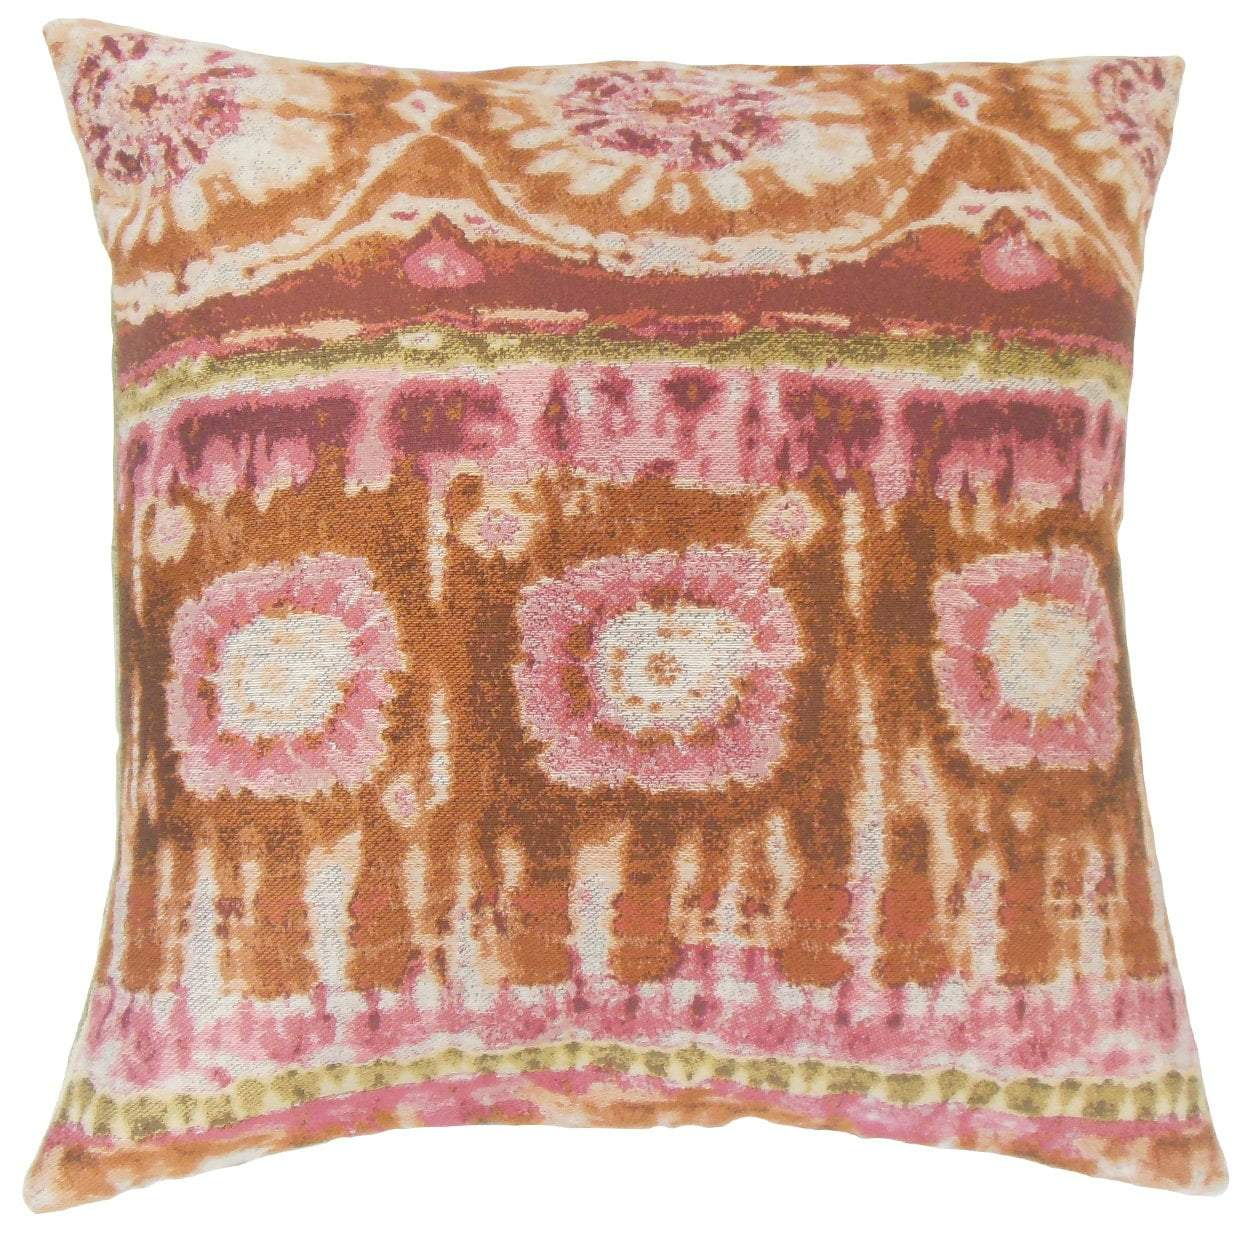 Synthetic Ikat Boho Throw Pillow Cover